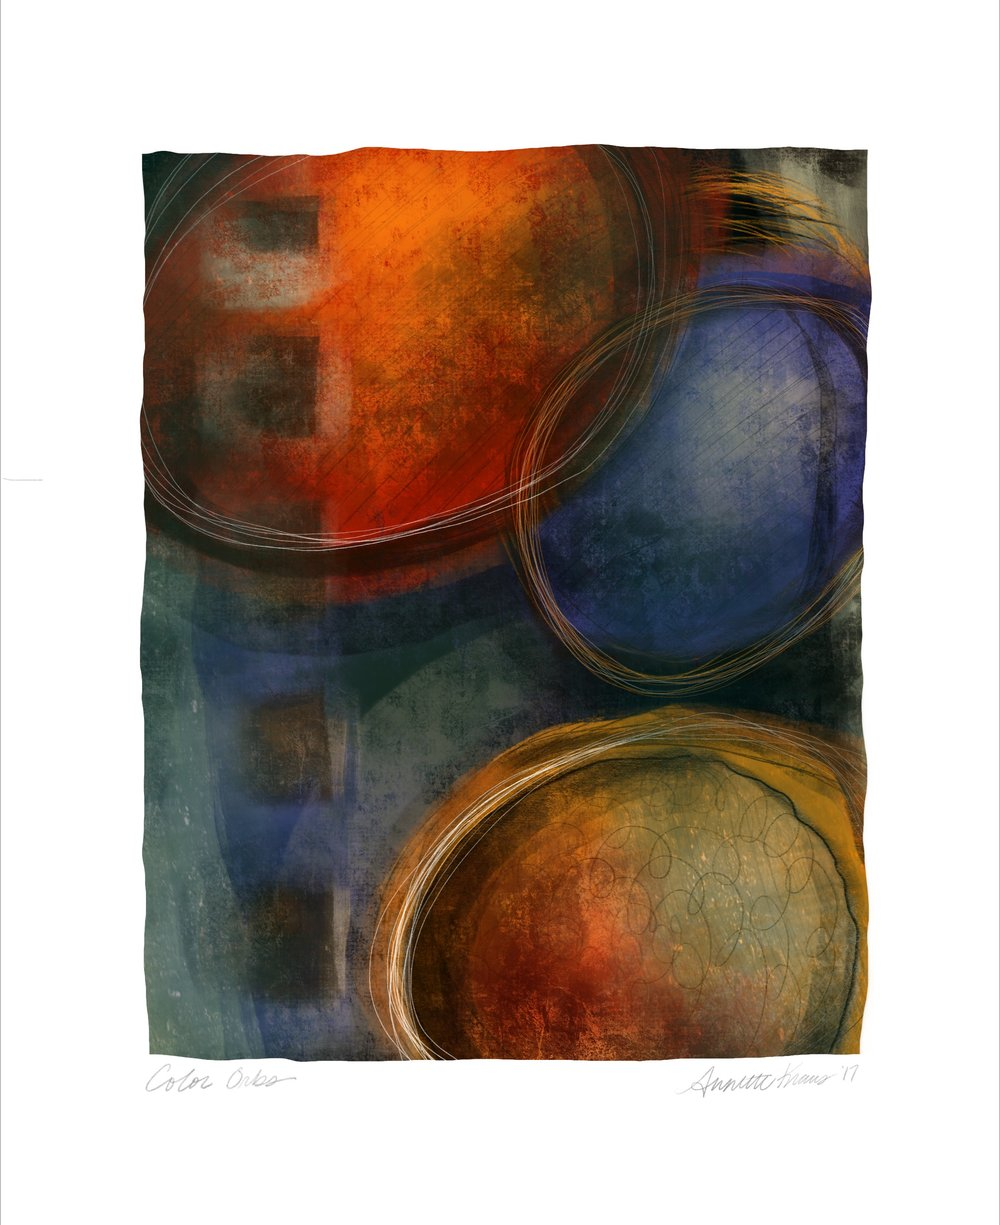 New work today on paper titled : Color Orbs 16x 20